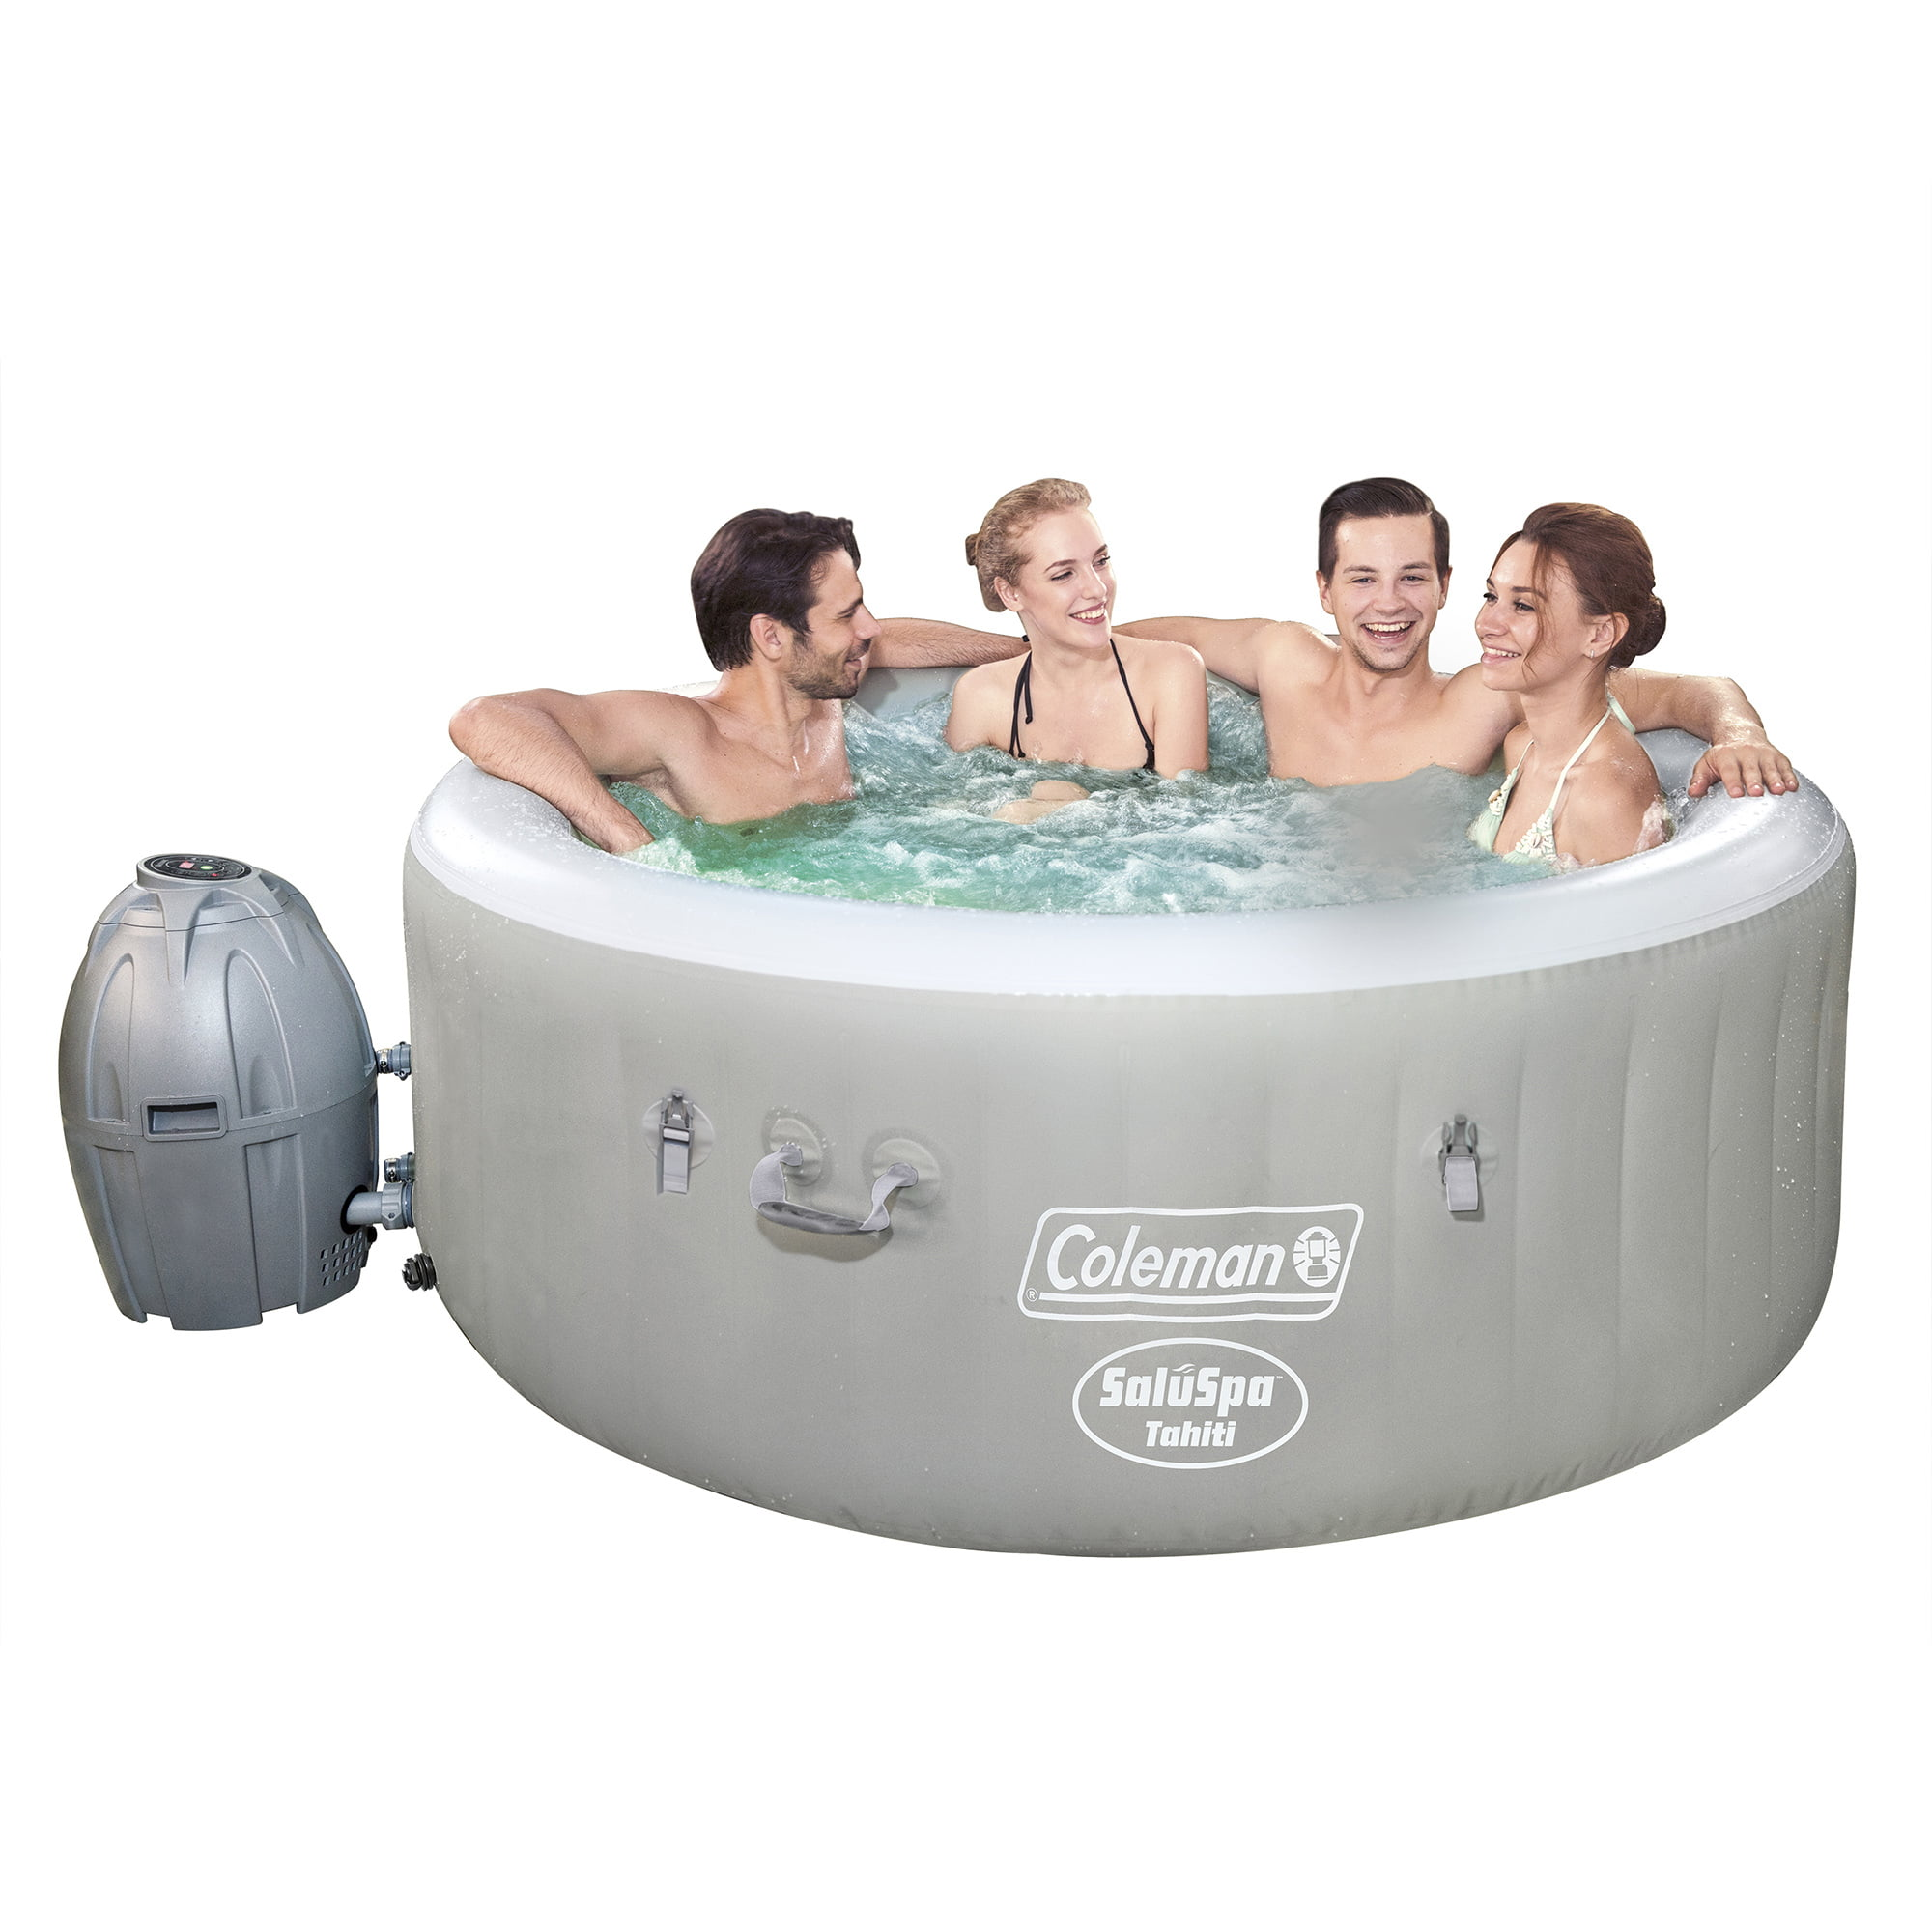 Wiring A Hot Tub In Bc